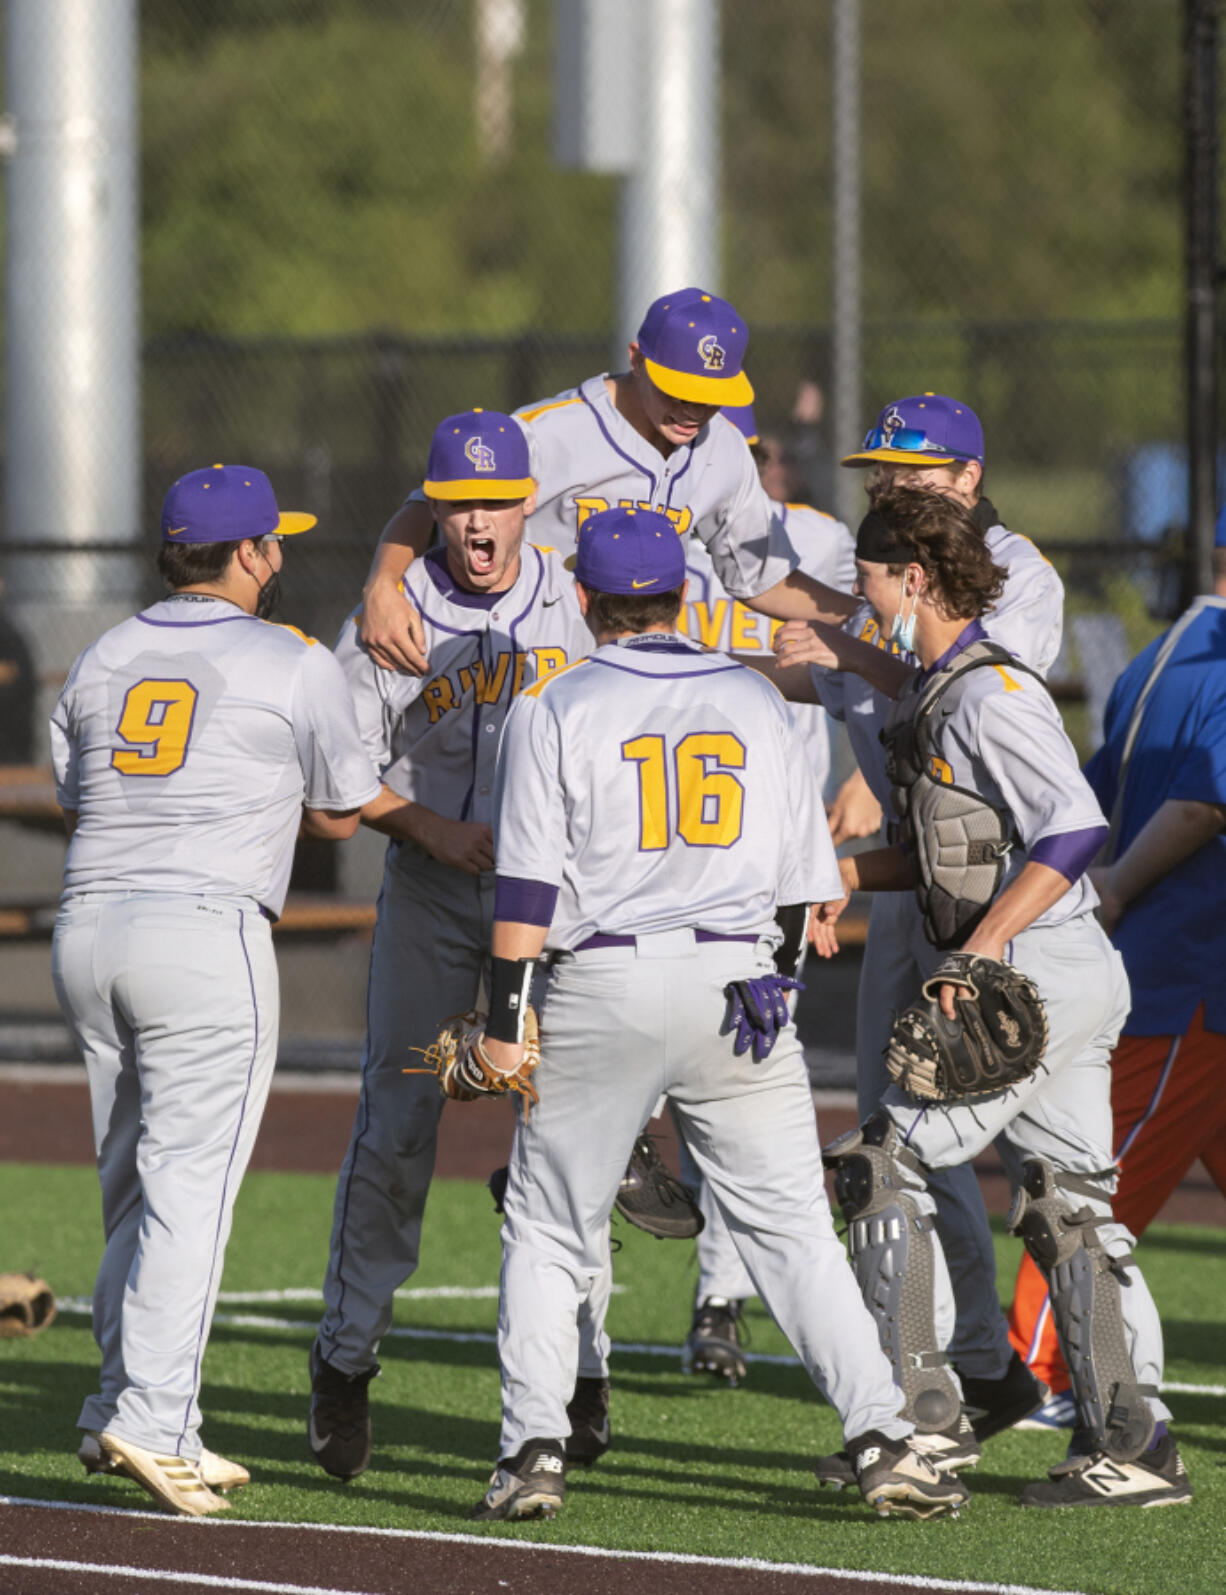 Columbia River players gather around pitcher Nick Alder, center, to celebrate a victory over Ridgefield on Tuesday, May 4, 2021, at the Ridgefield Outdoor Recreation Complex. Columbia River won 4-2 to advance in the 2A Southwest District Tournament.